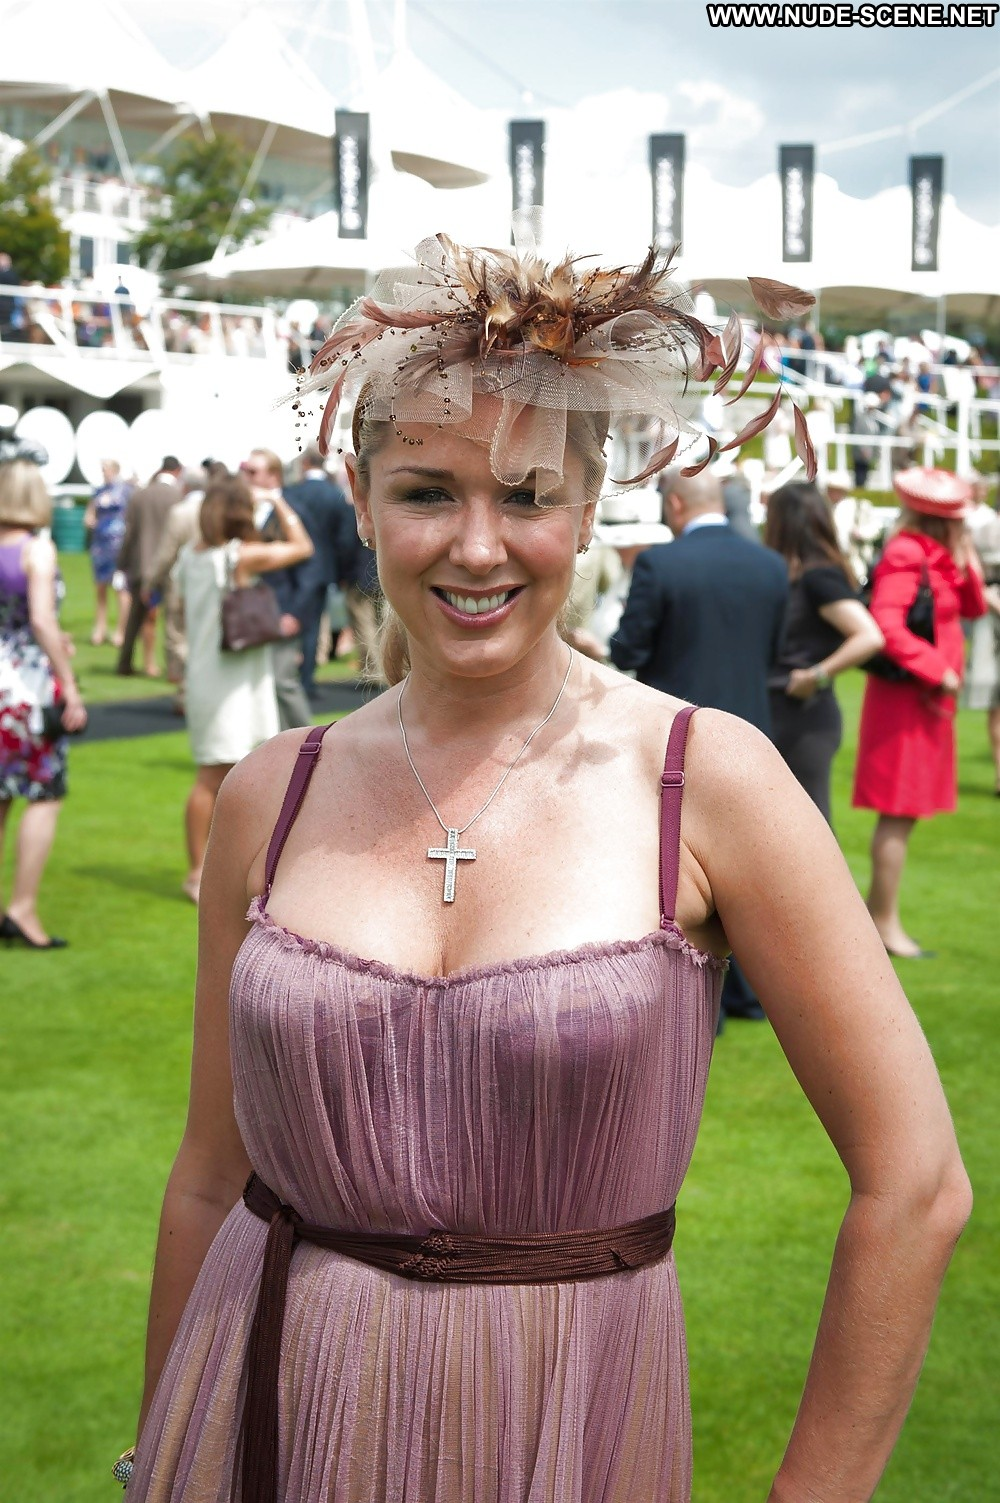 Group claire sweeney topless could